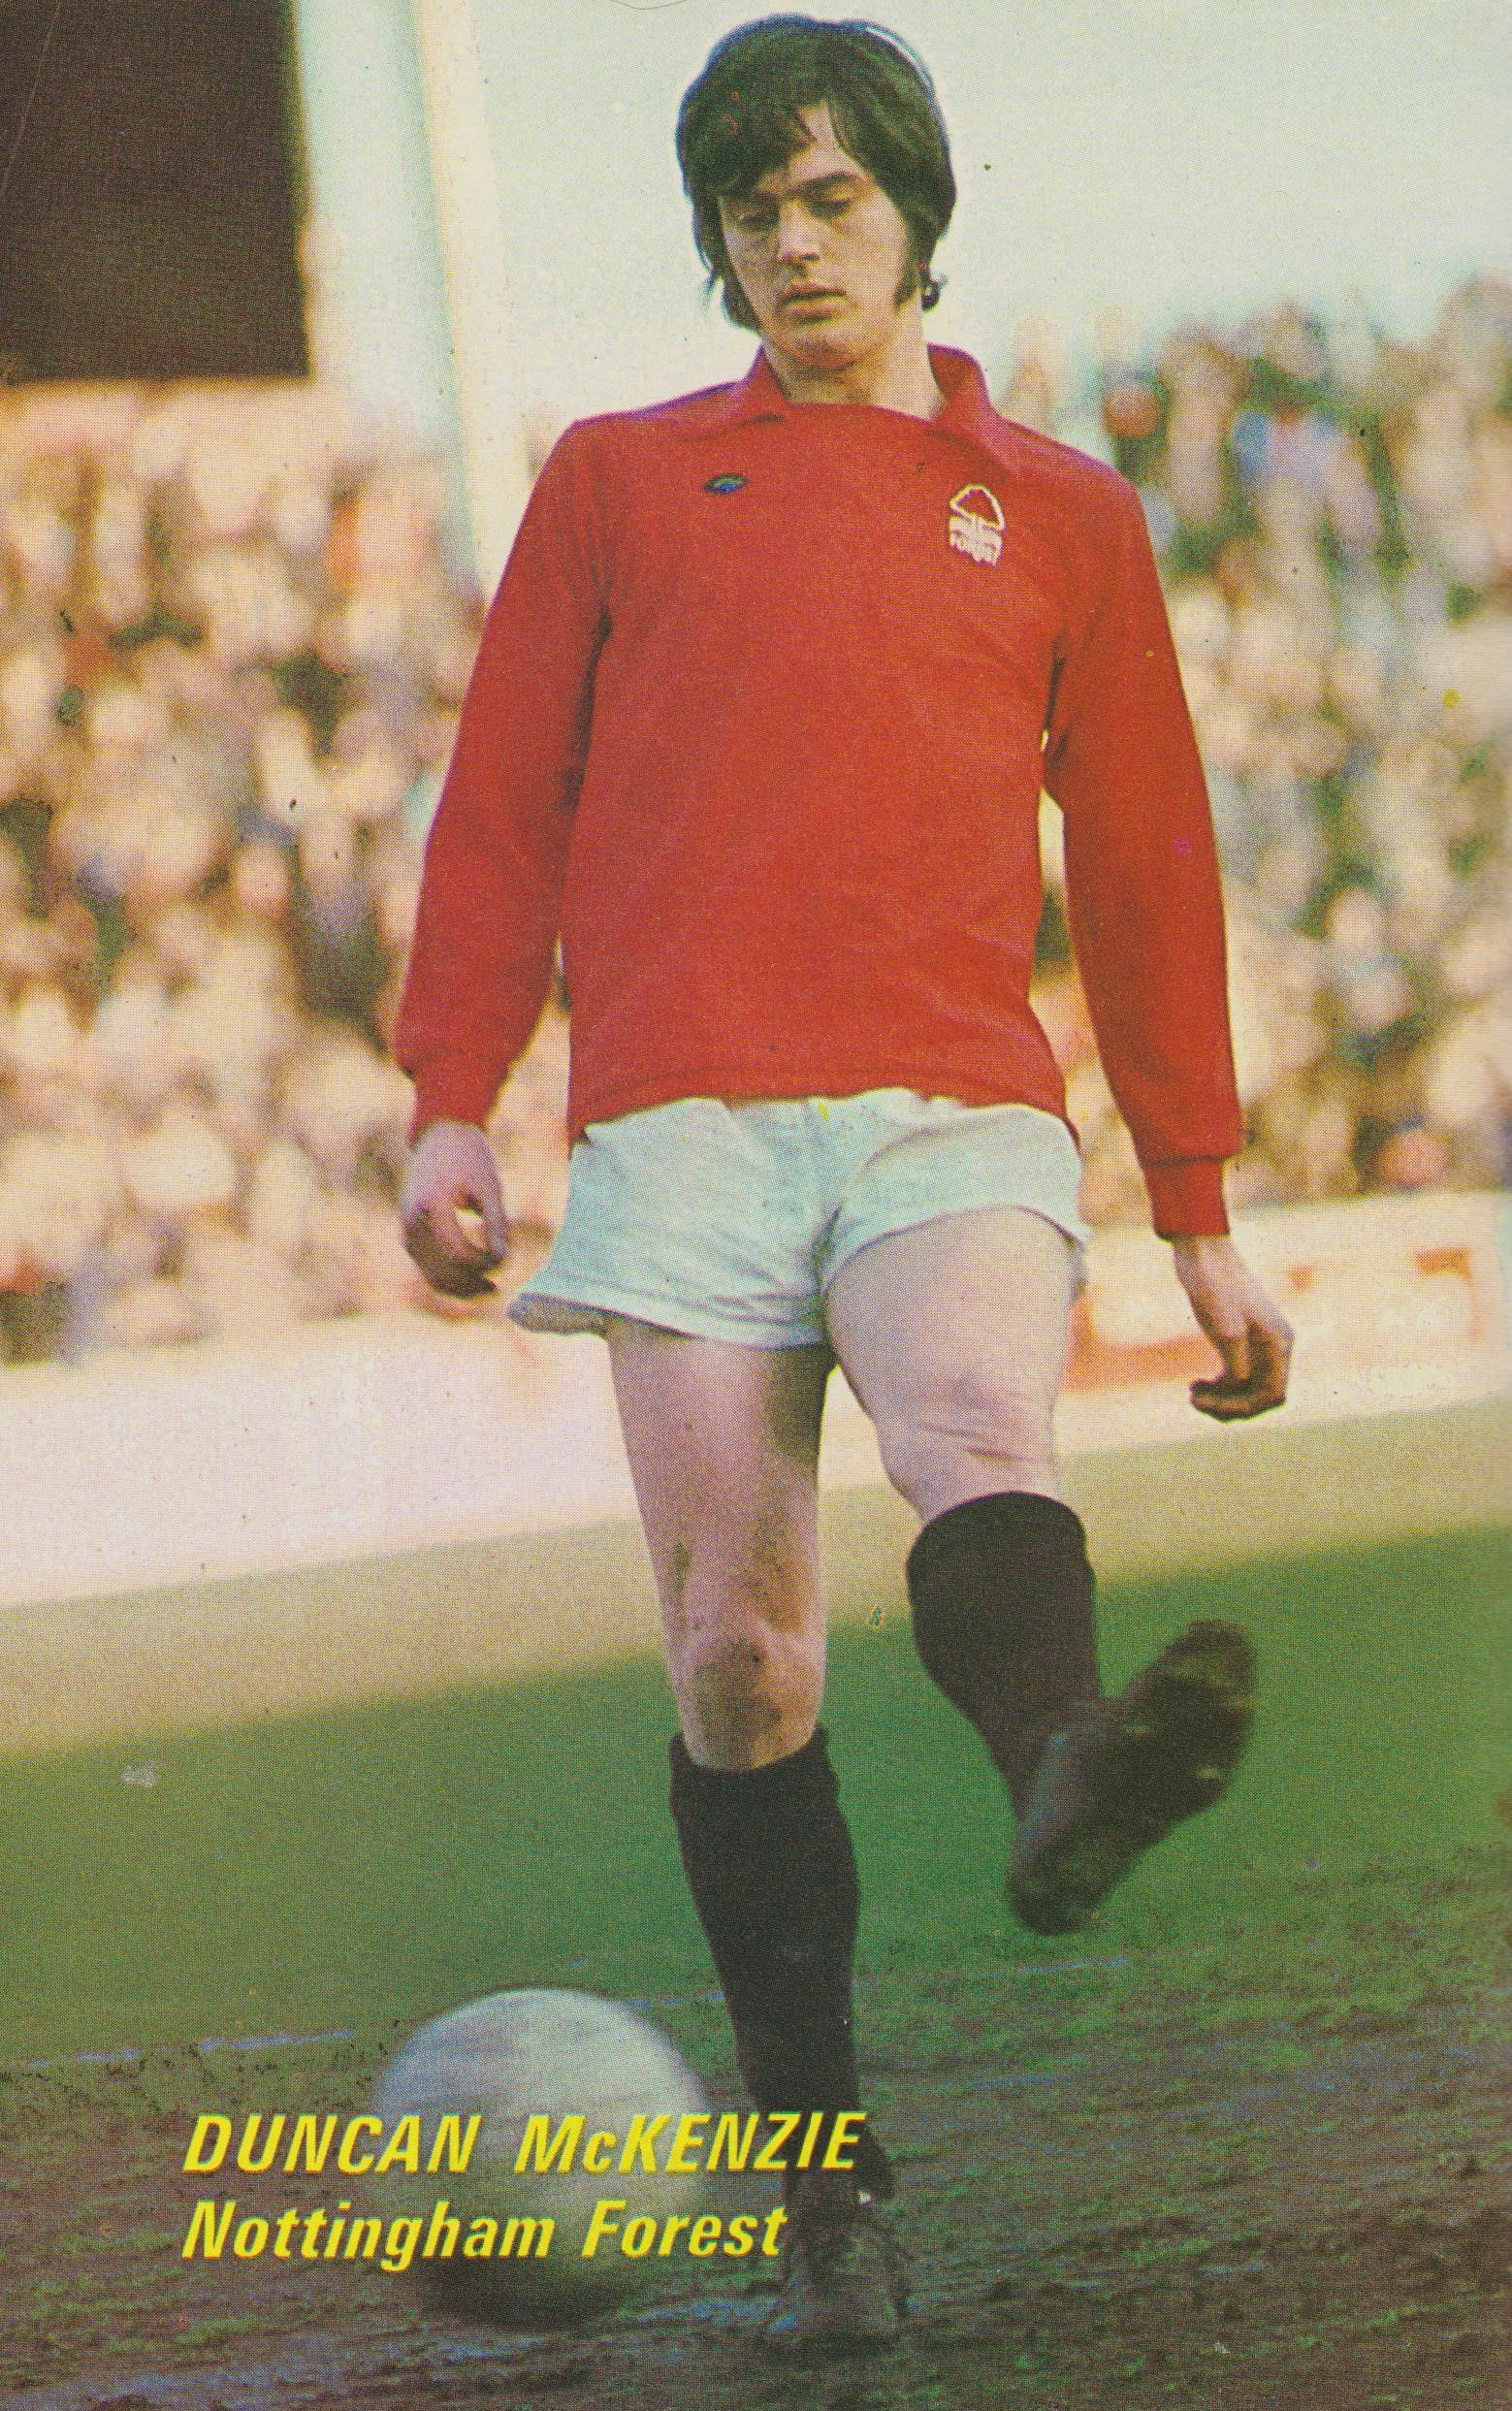 Duncan McKenzie Nottingham Forest 1973 | Nottingham forest, Football  shirts, Retro football